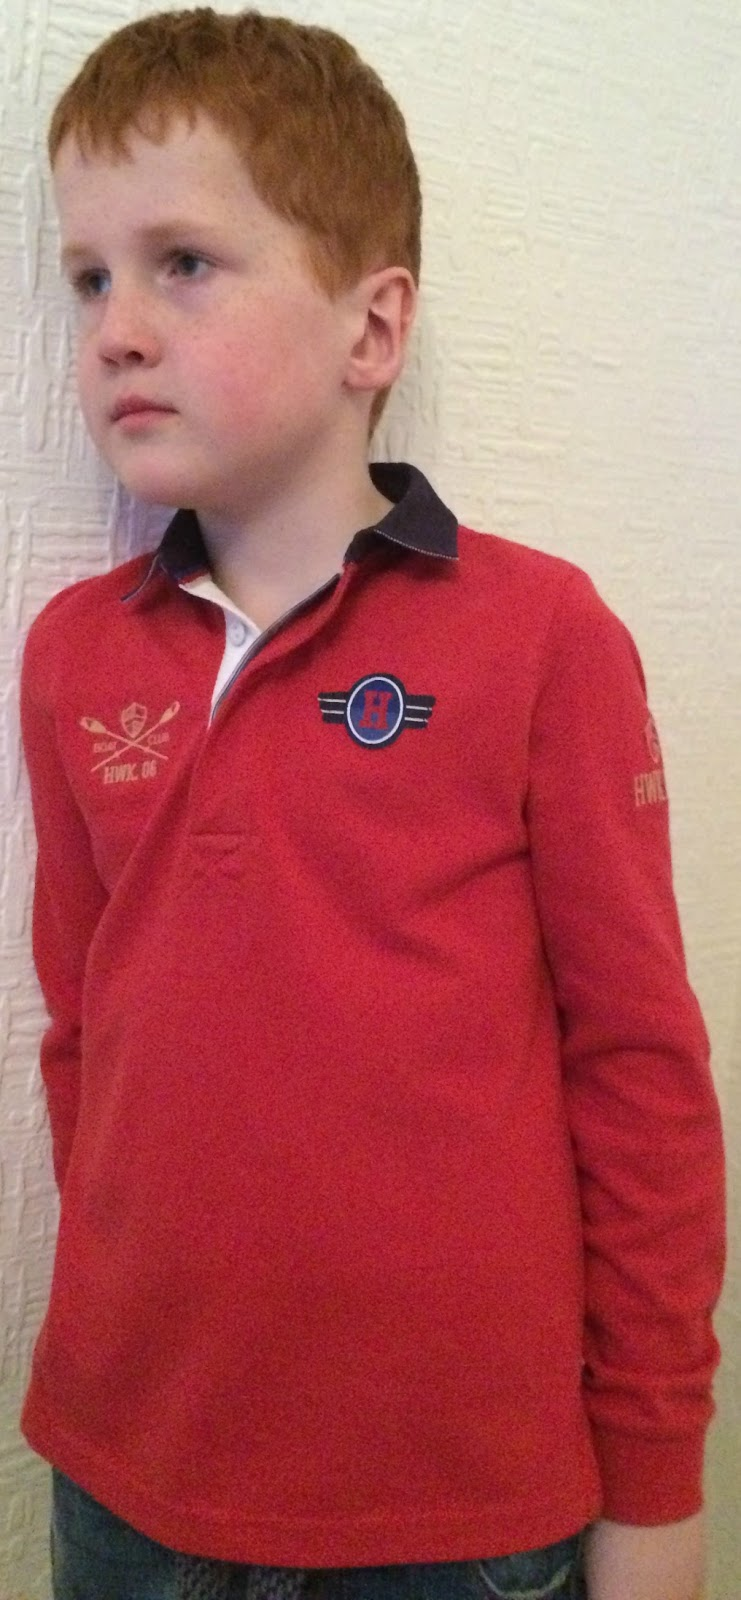 Ieuan wearing the Howick Junior Pique Polo Top